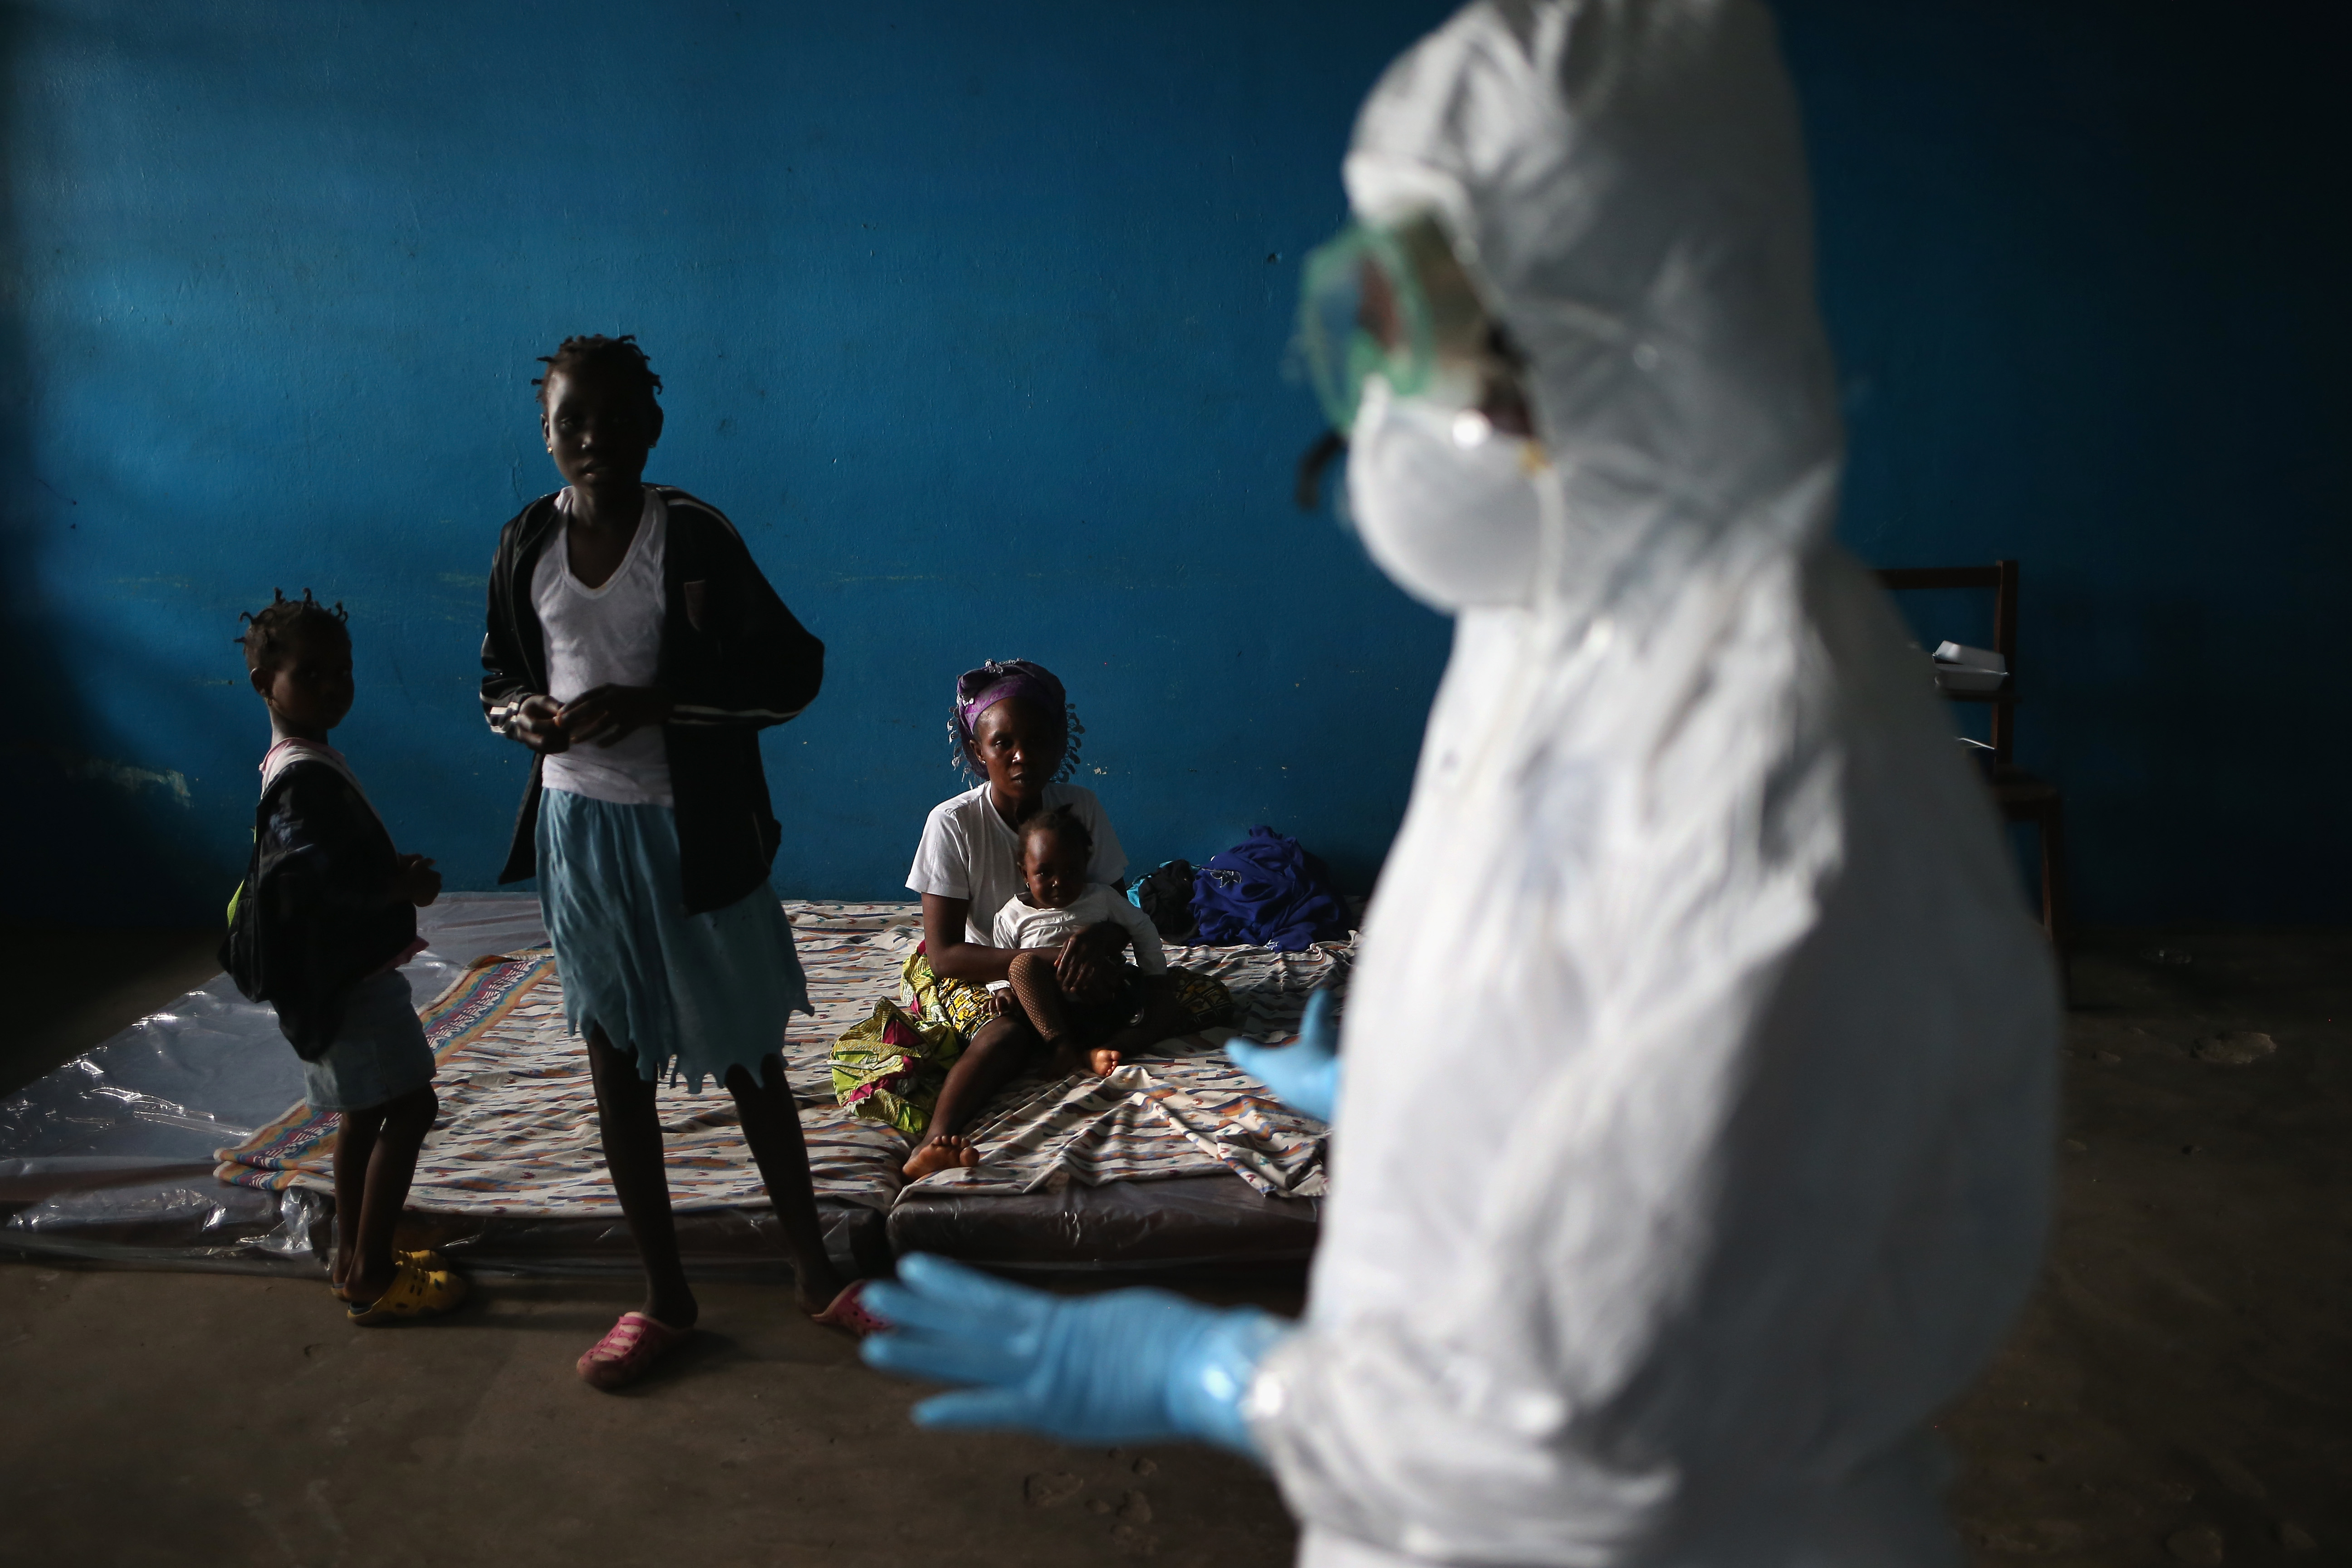 A Liberian health worker speaks with families in a classroom now used as Ebola isolation ward on August 15, 2014 in Monrovia, Liberia.